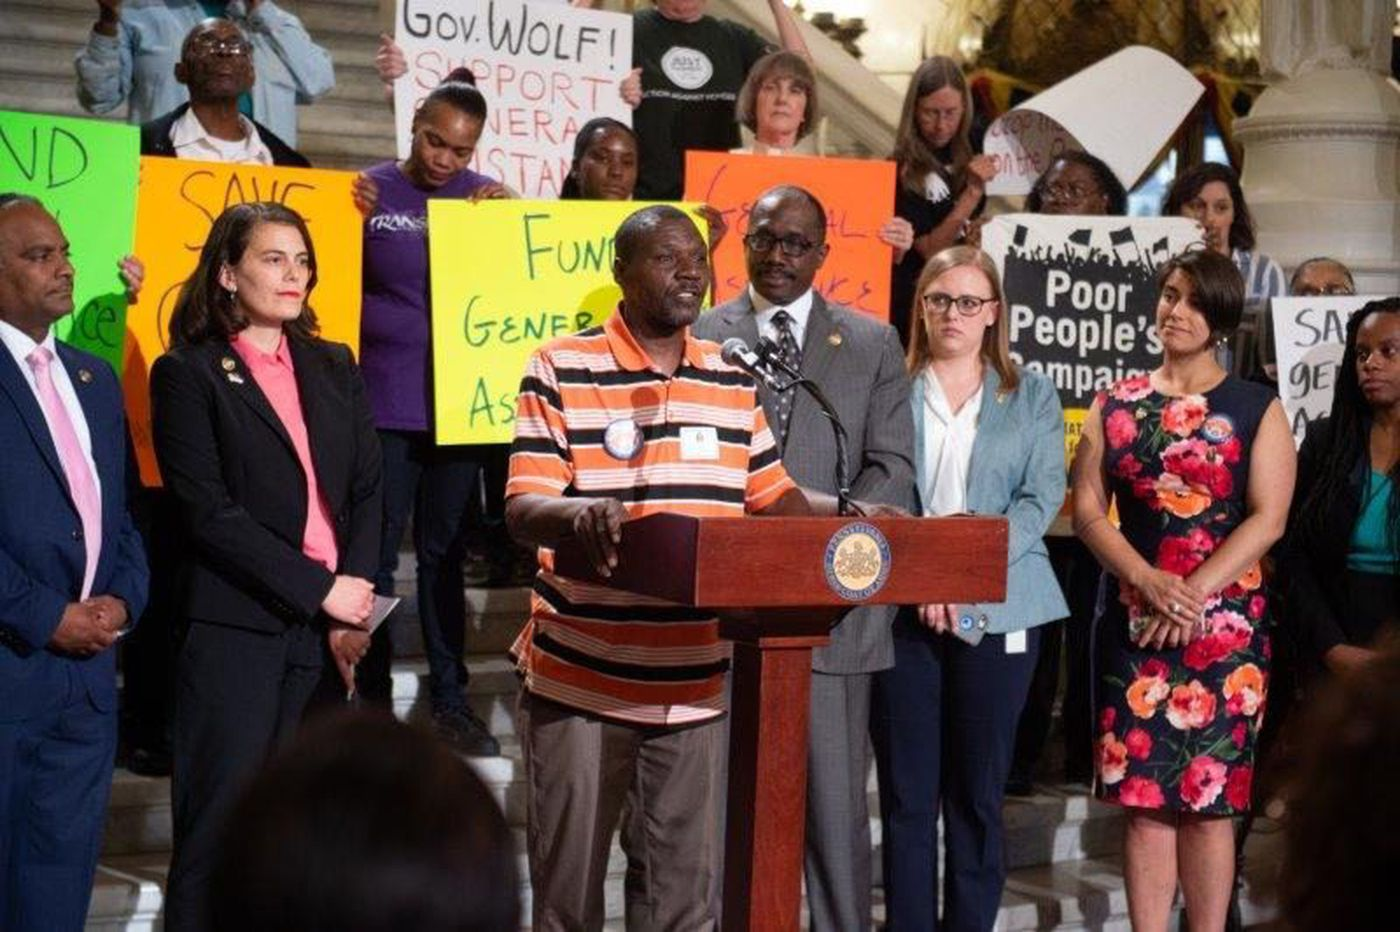 Pa. Supreme Court joins lower court and legislature in dismissing poor people's needs | Opinion